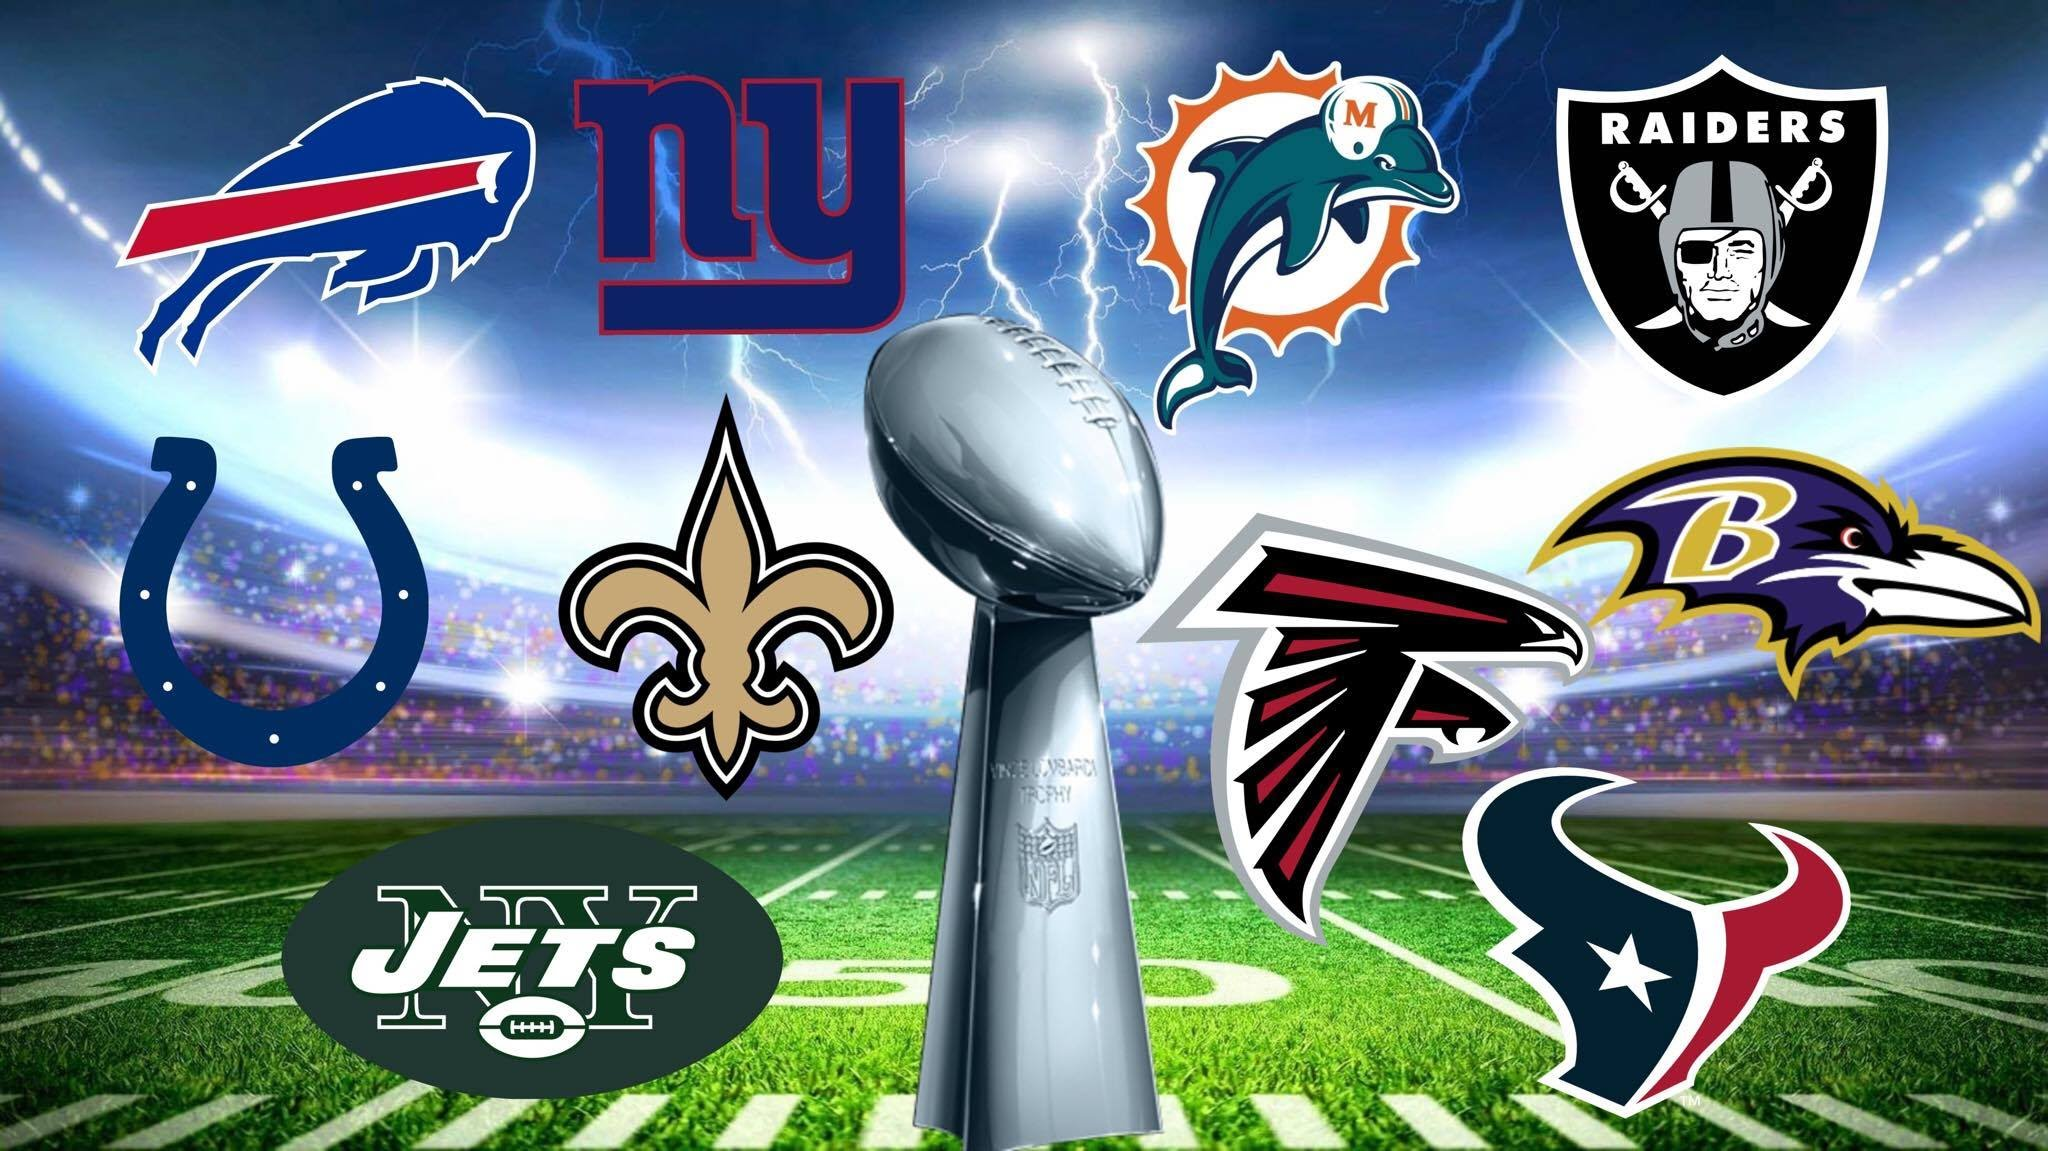 NFL Betting Money and Picks